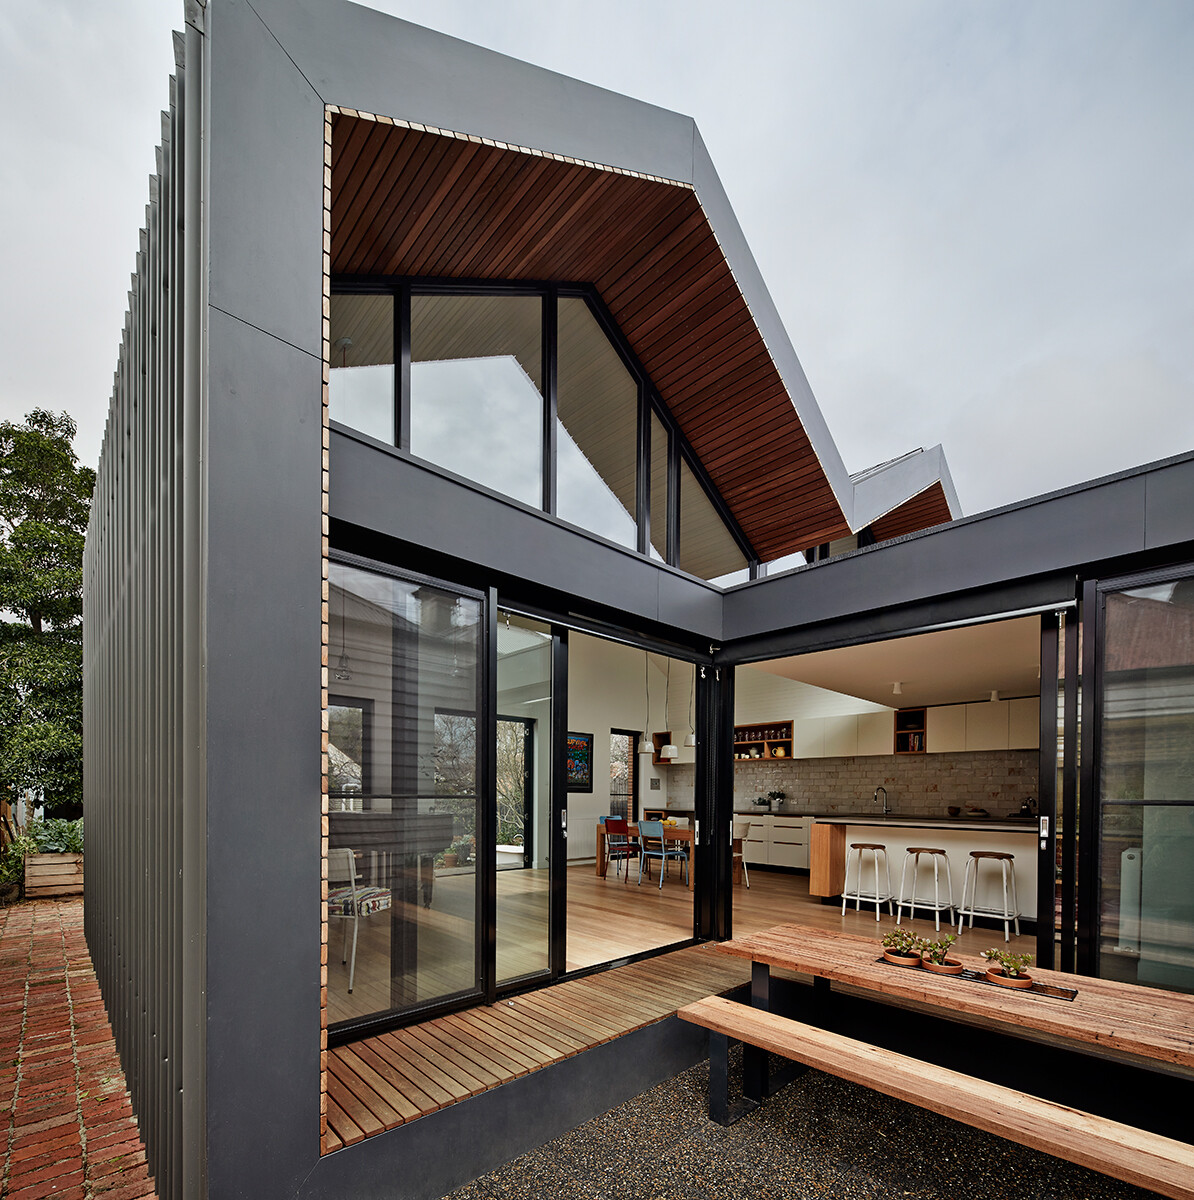 M house a successful modification for more natural light for Design house architecture nz